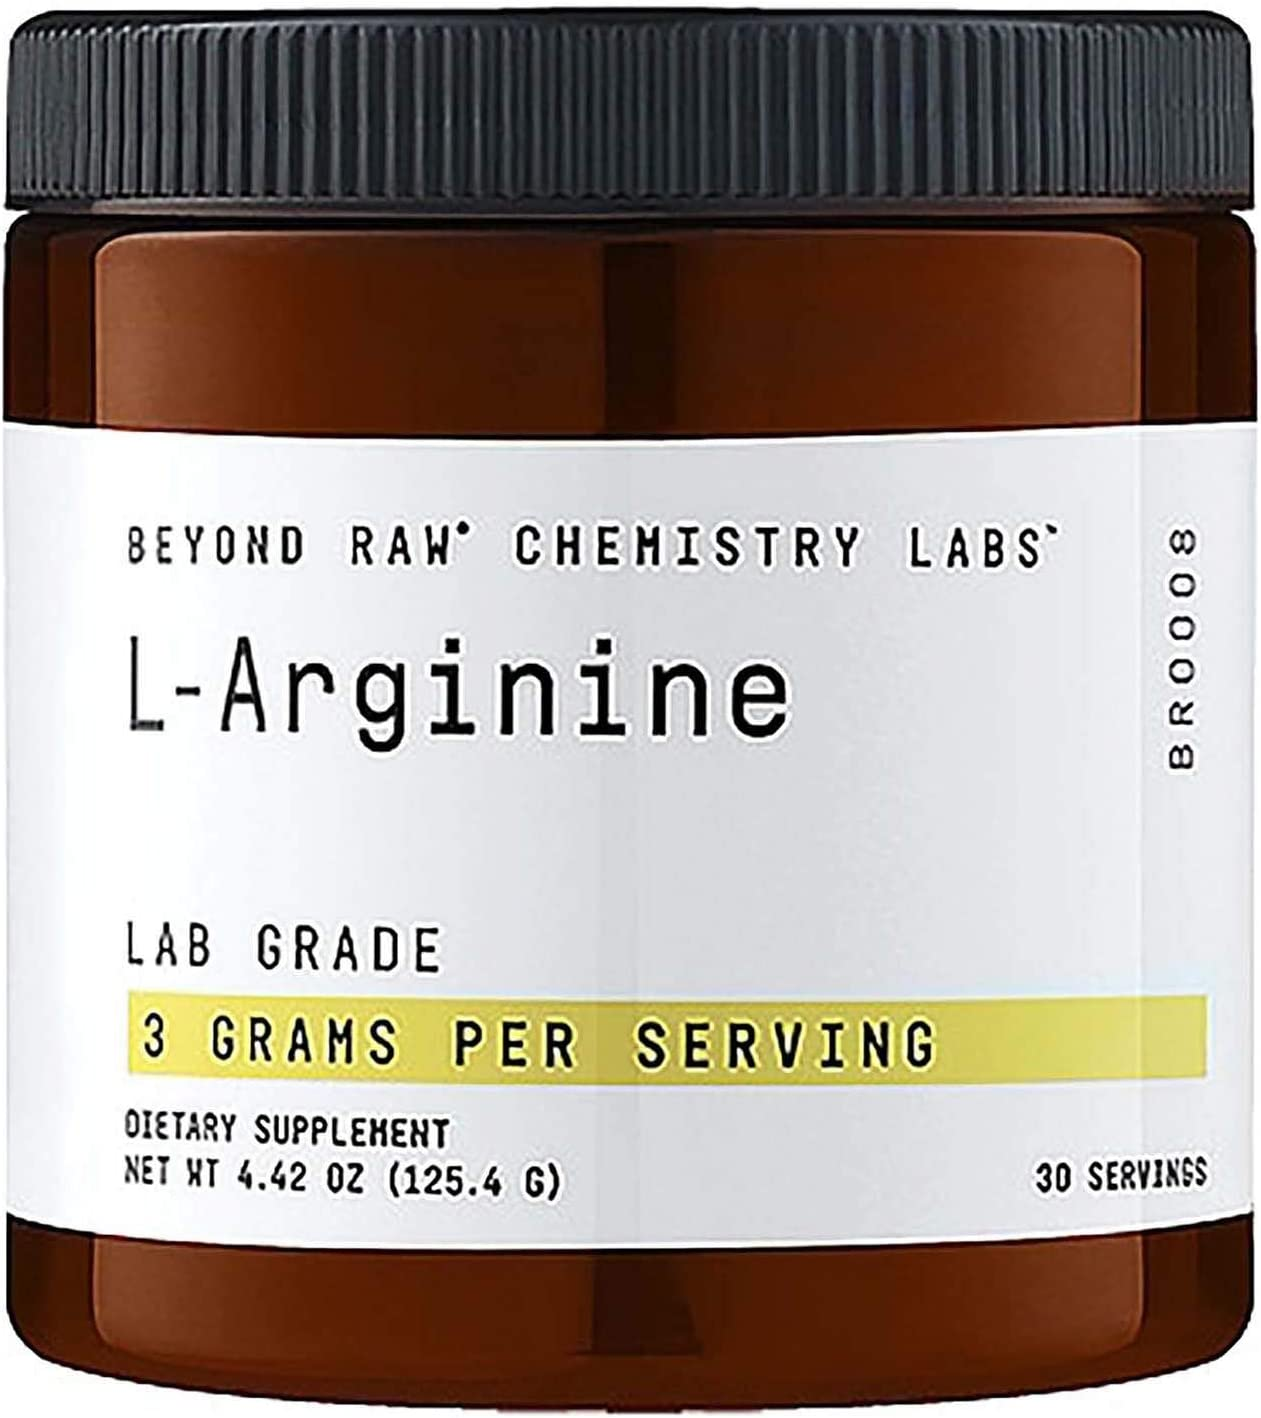 Beyond Raw Chemistry Labs L-Arginine, 30 Servings, Fuels Exercise and Supports Recovery 71e89dNOLAL